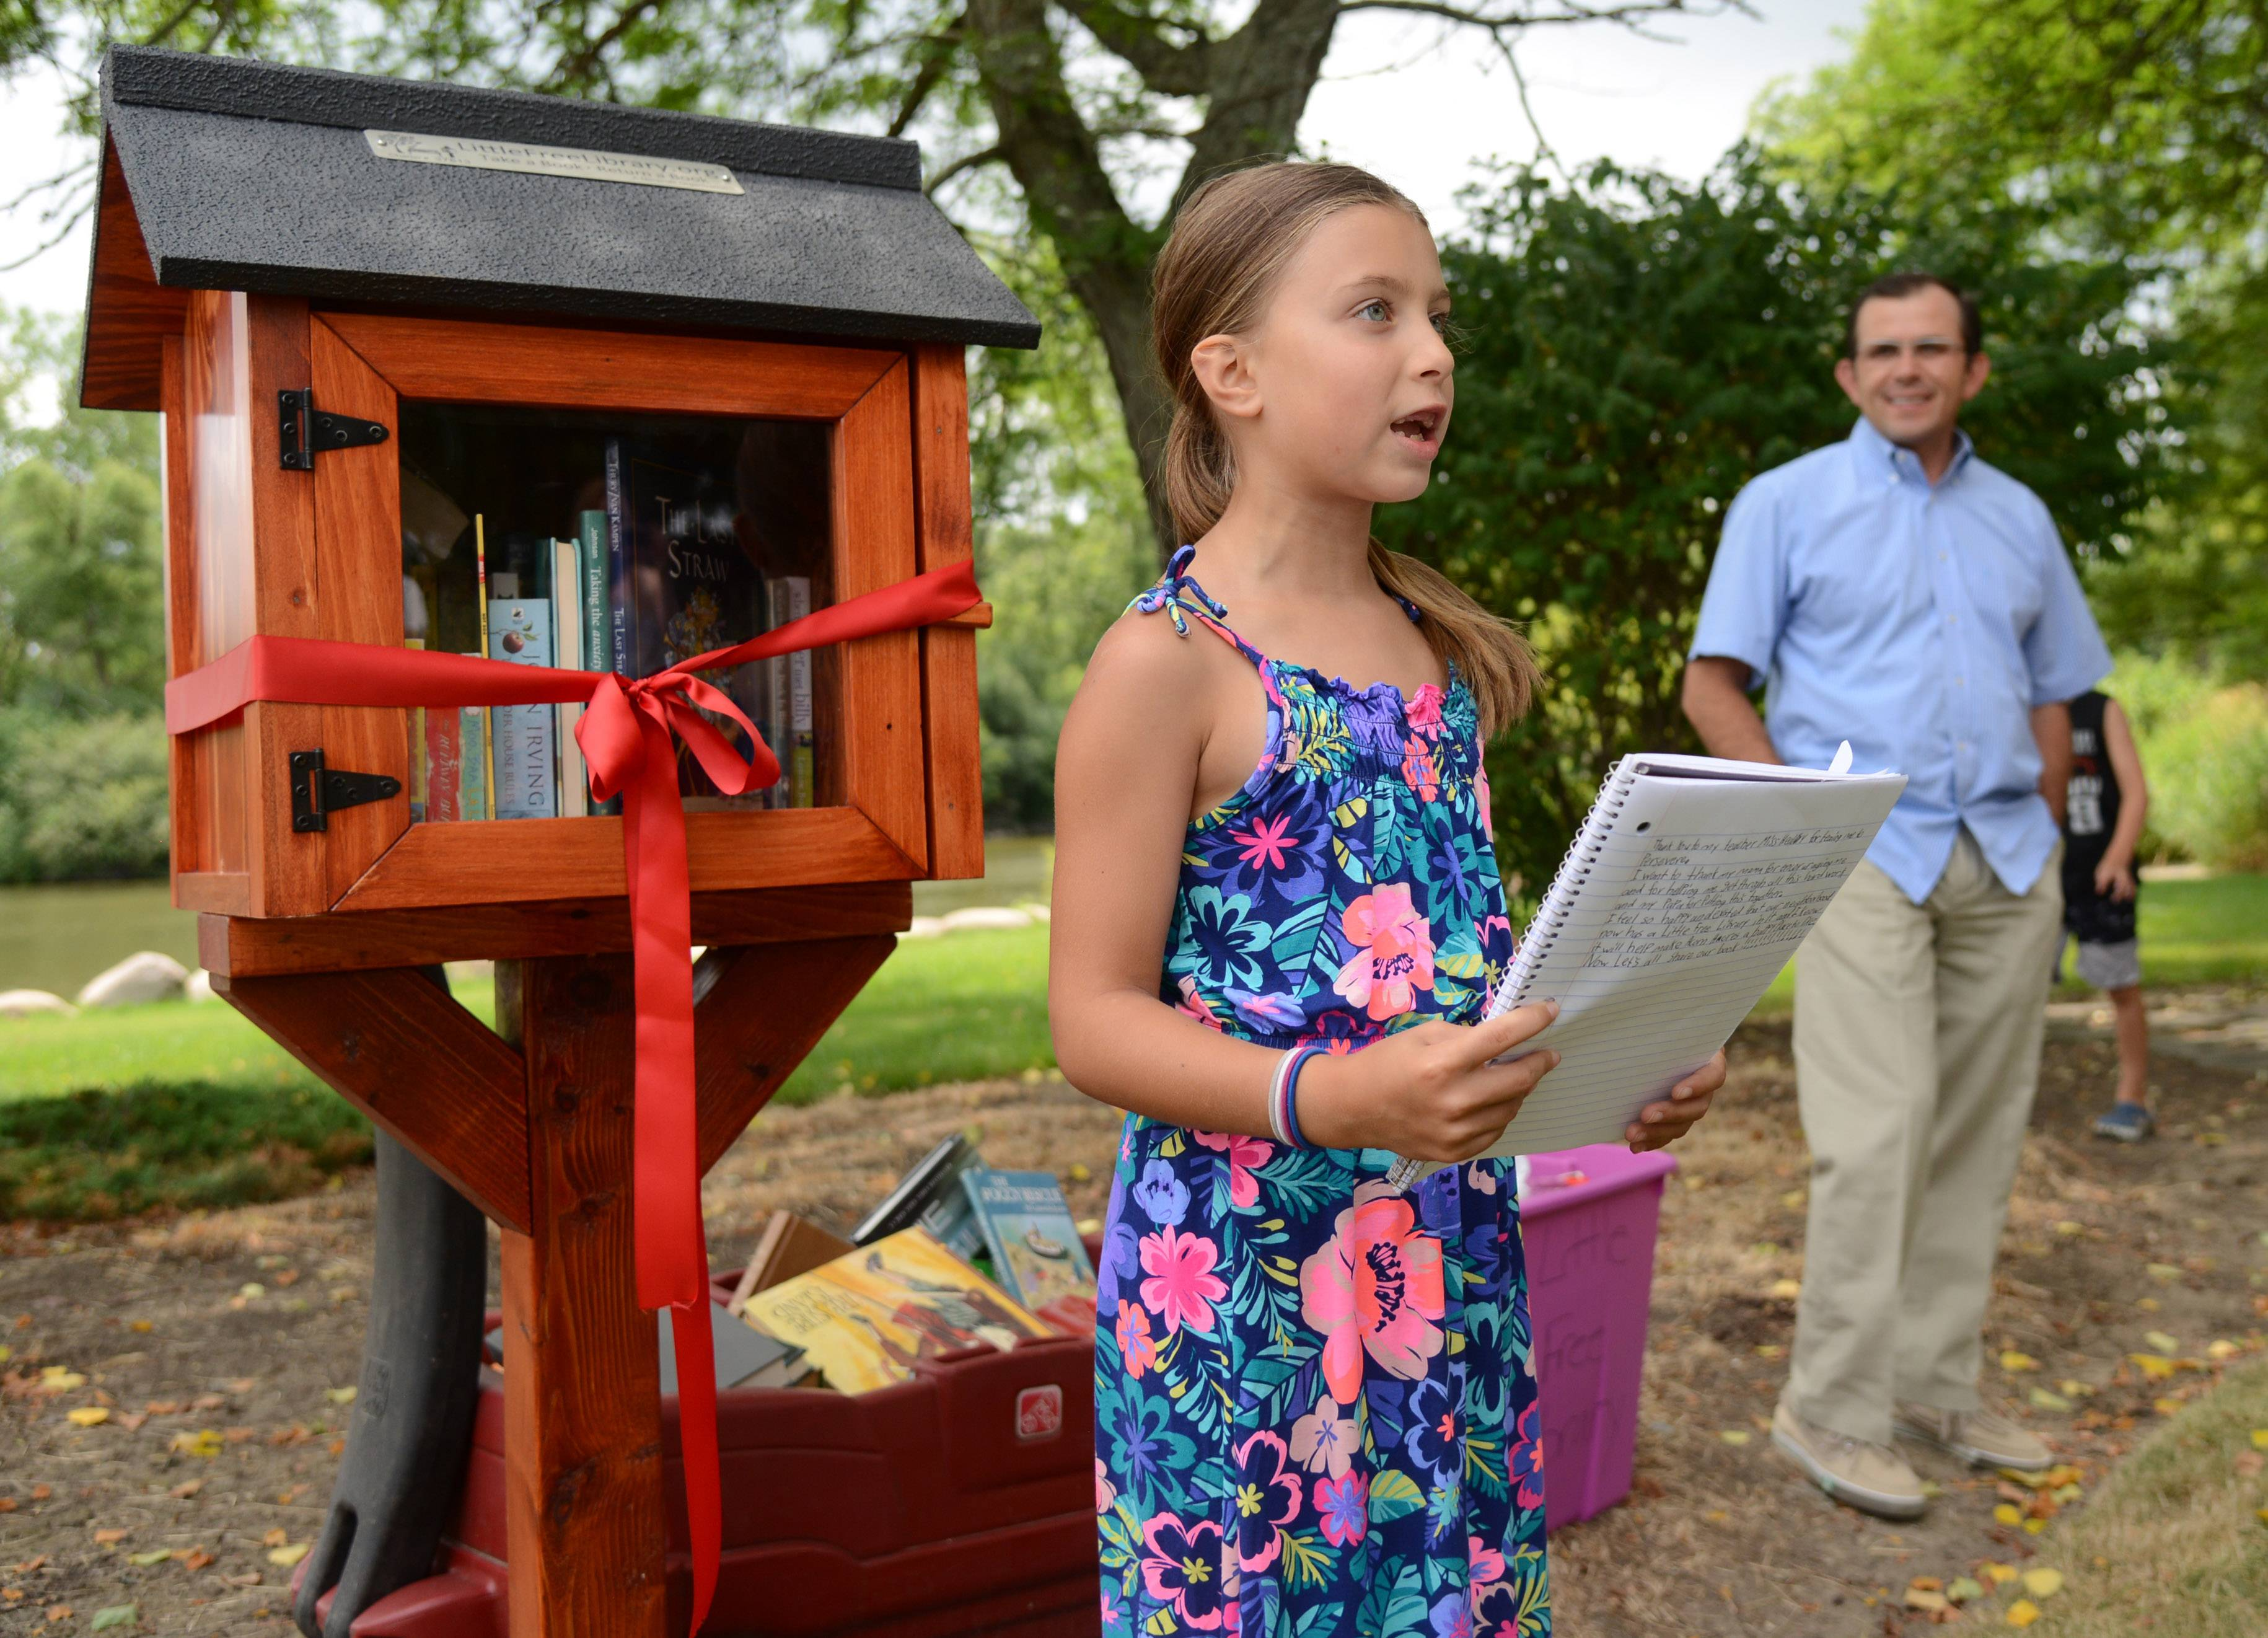 Thank 7-year-old for new Little Free Library in Hawthorn Woods